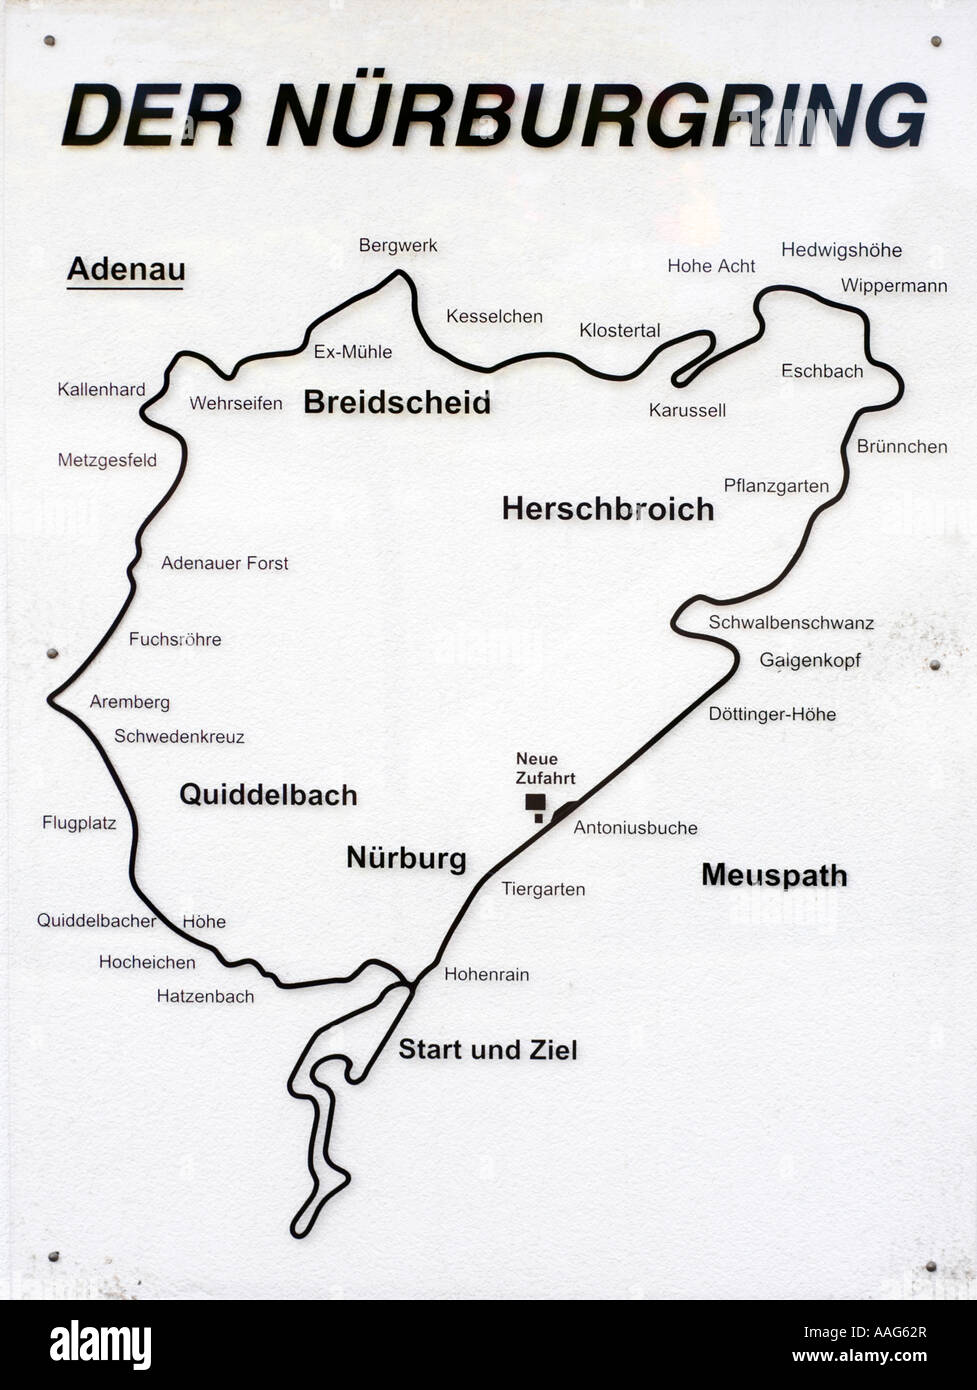 ring-map-outside-the-nordschleife-public